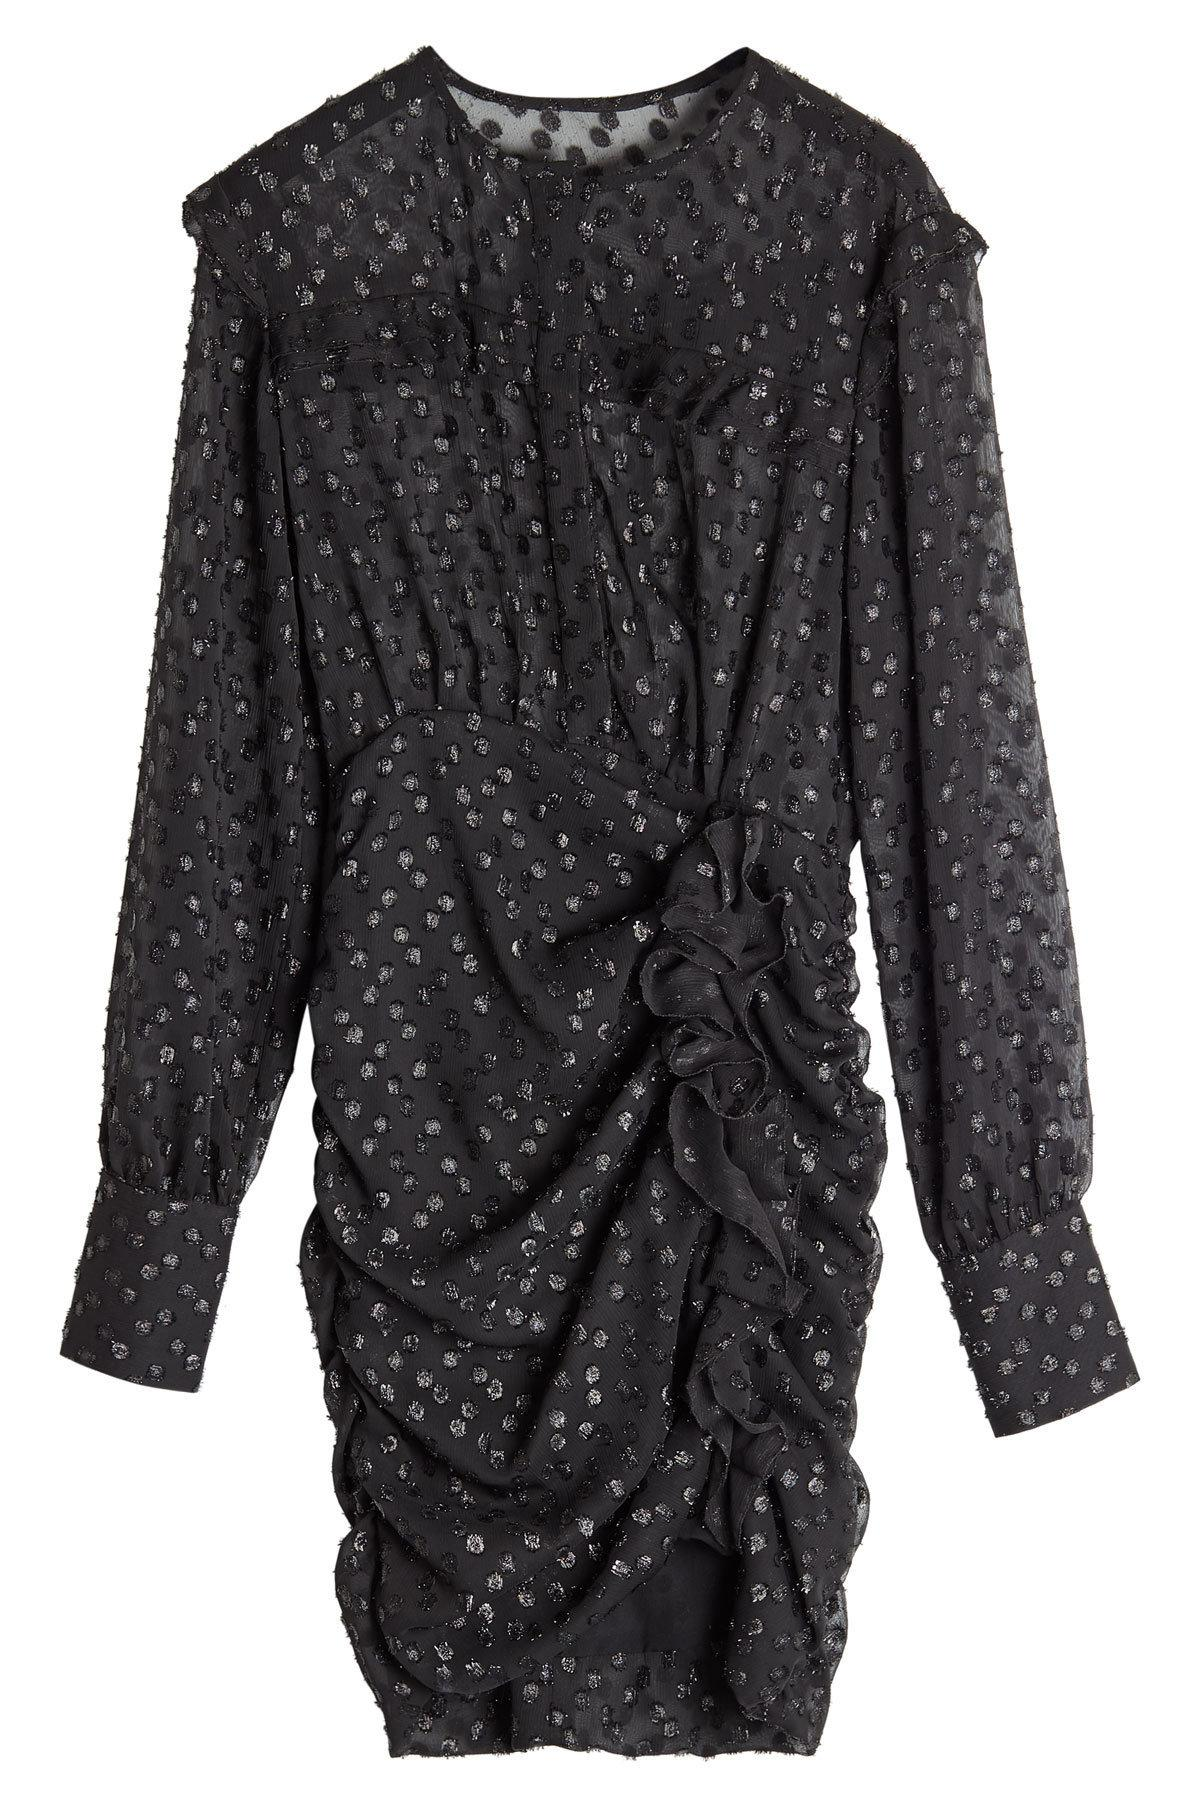 Isabel Marant Dress With Metallic Thread In Black